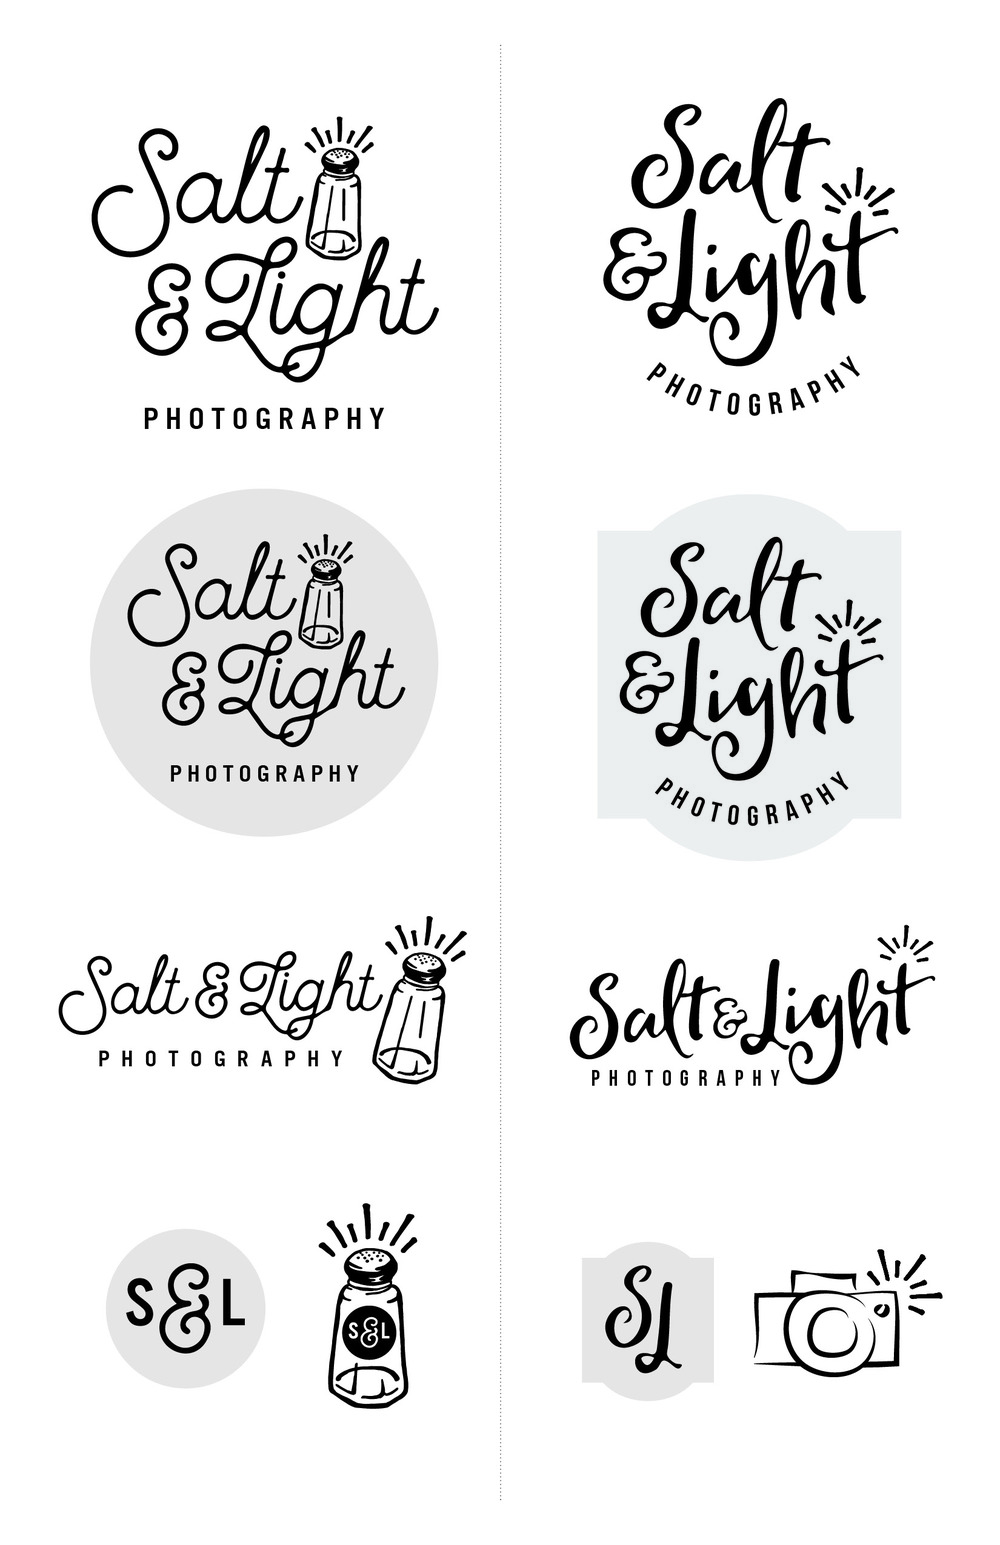 Salt & Light Photography Logo Ideas